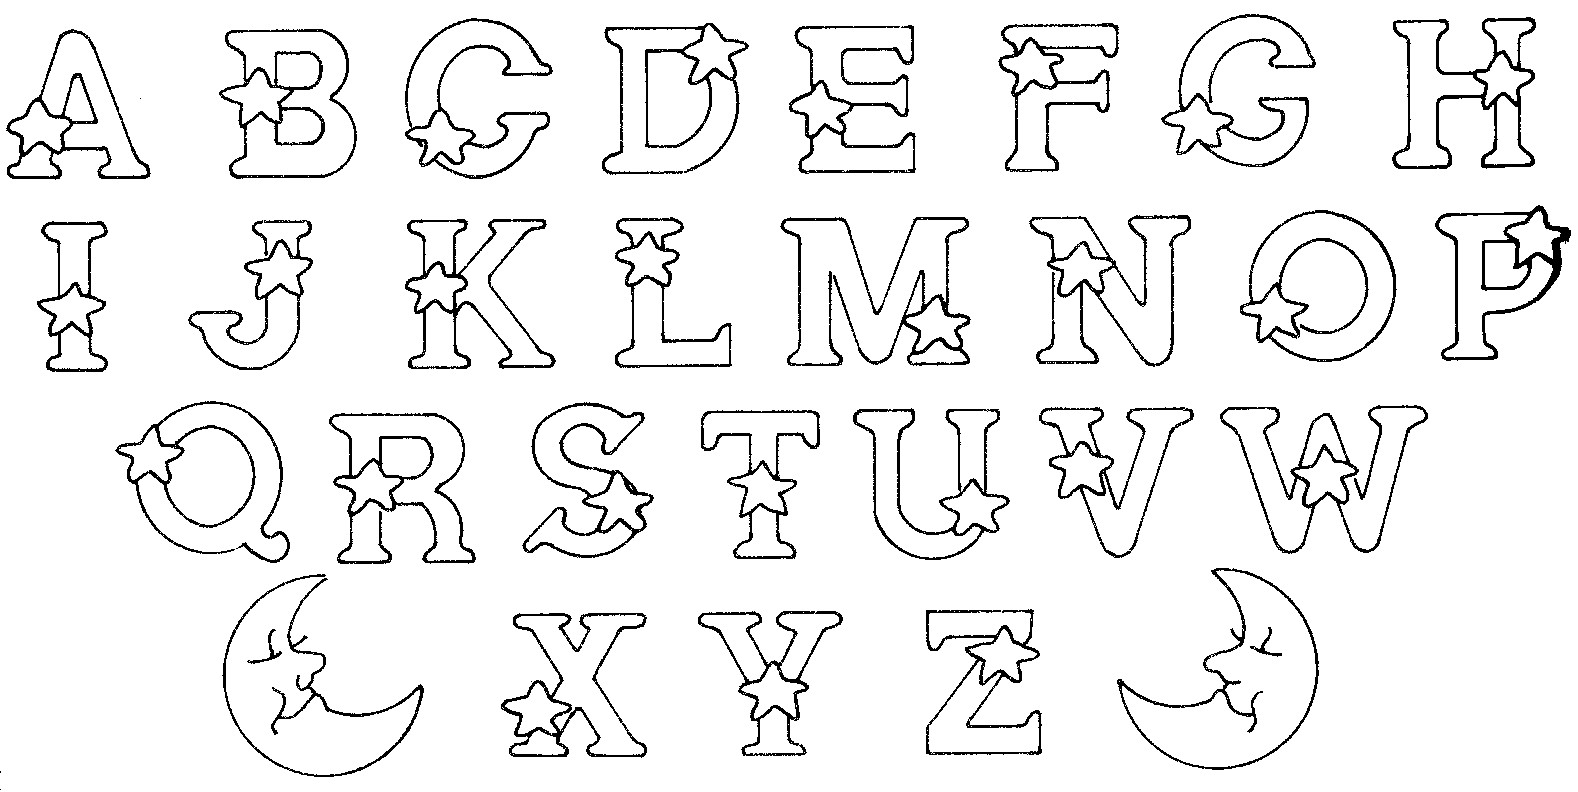 Alphabet to download Alphabet Kids Coloring Pages